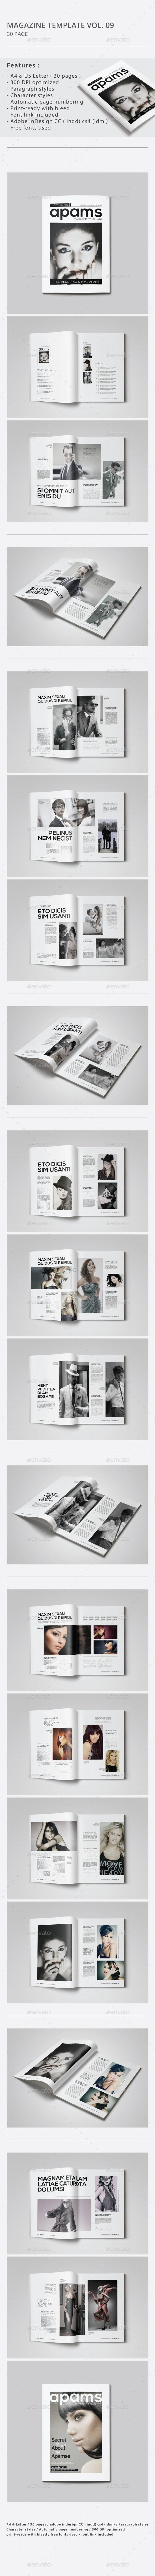 Indesign Magazine Template #magazinetemplate Download: http://graphicriver.net/item/indesign-magazine-template-vol09/9498512?ref=ksioks